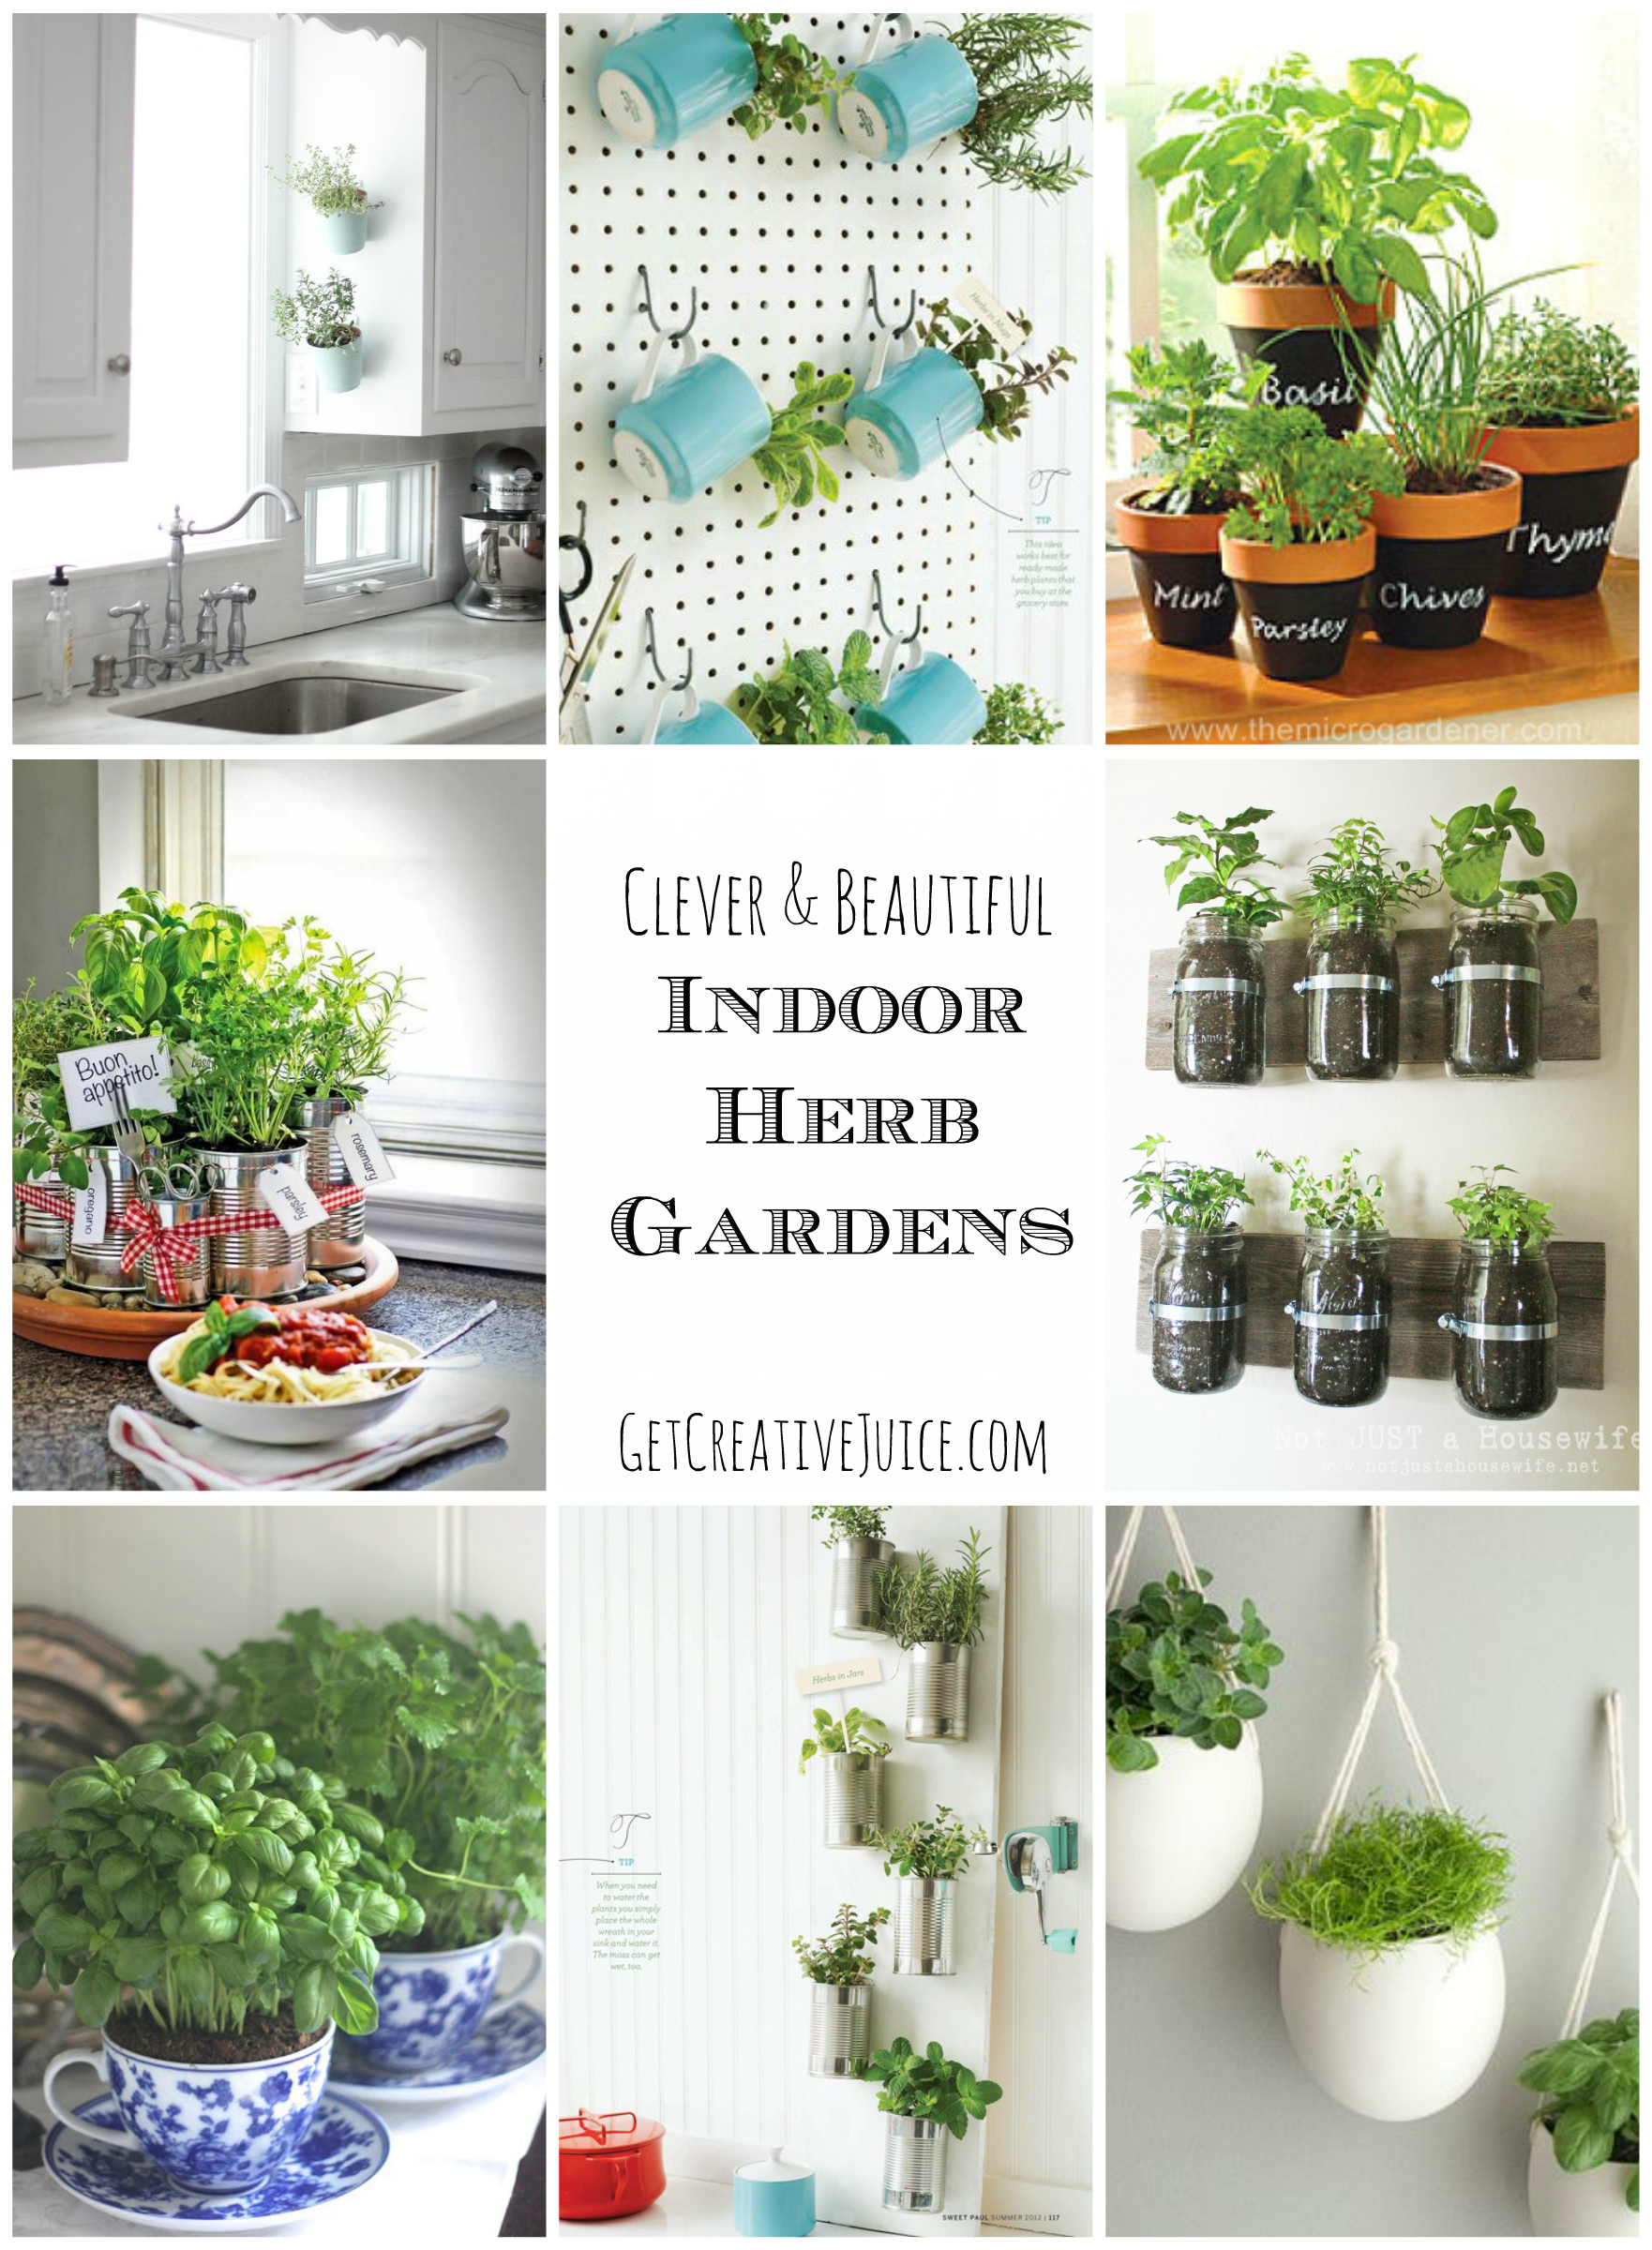 Simphome.com indoor herb garden ideas creative juice with relevant ideas for 2020